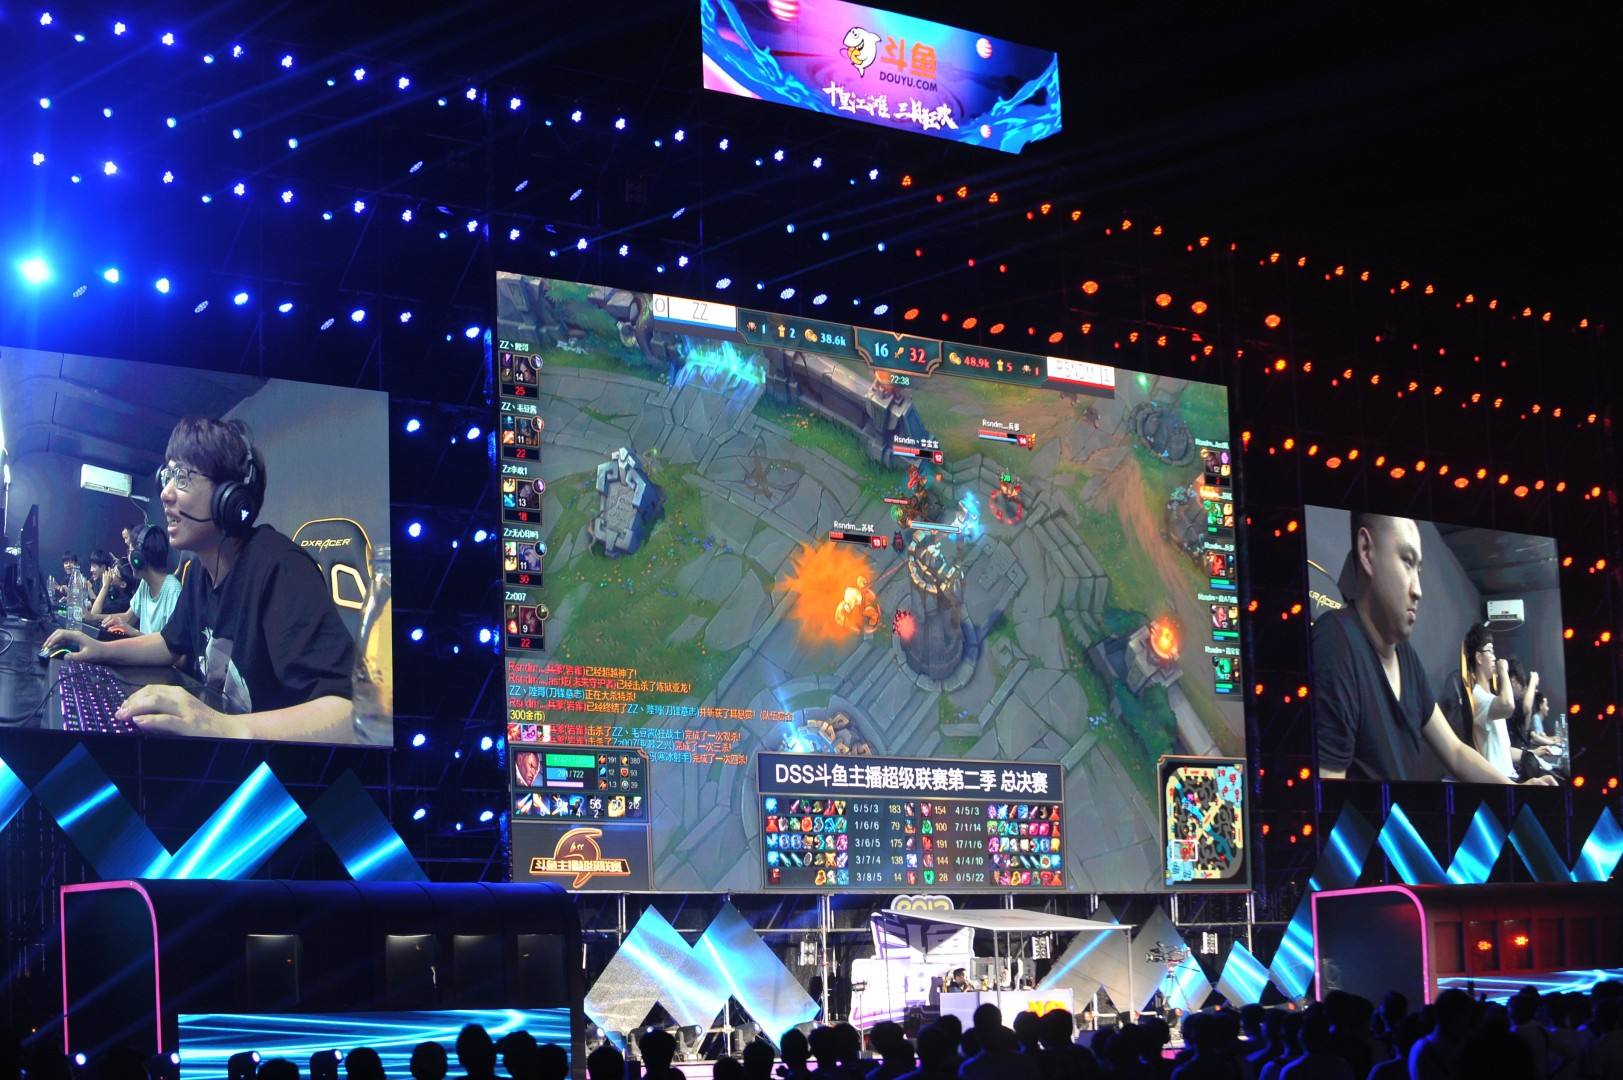 The phenomenal rise of e-sports in China where gamers